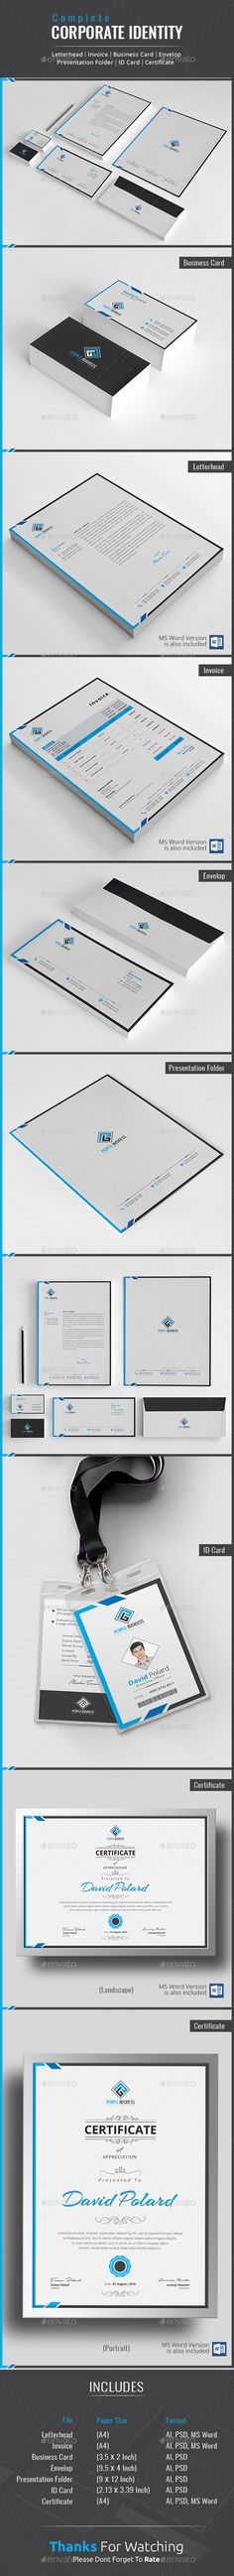 Corporate Identity - Stationery Print Templates Download https://graphicriver.net/item/corporate-identity/17526589?ref=themedevisers